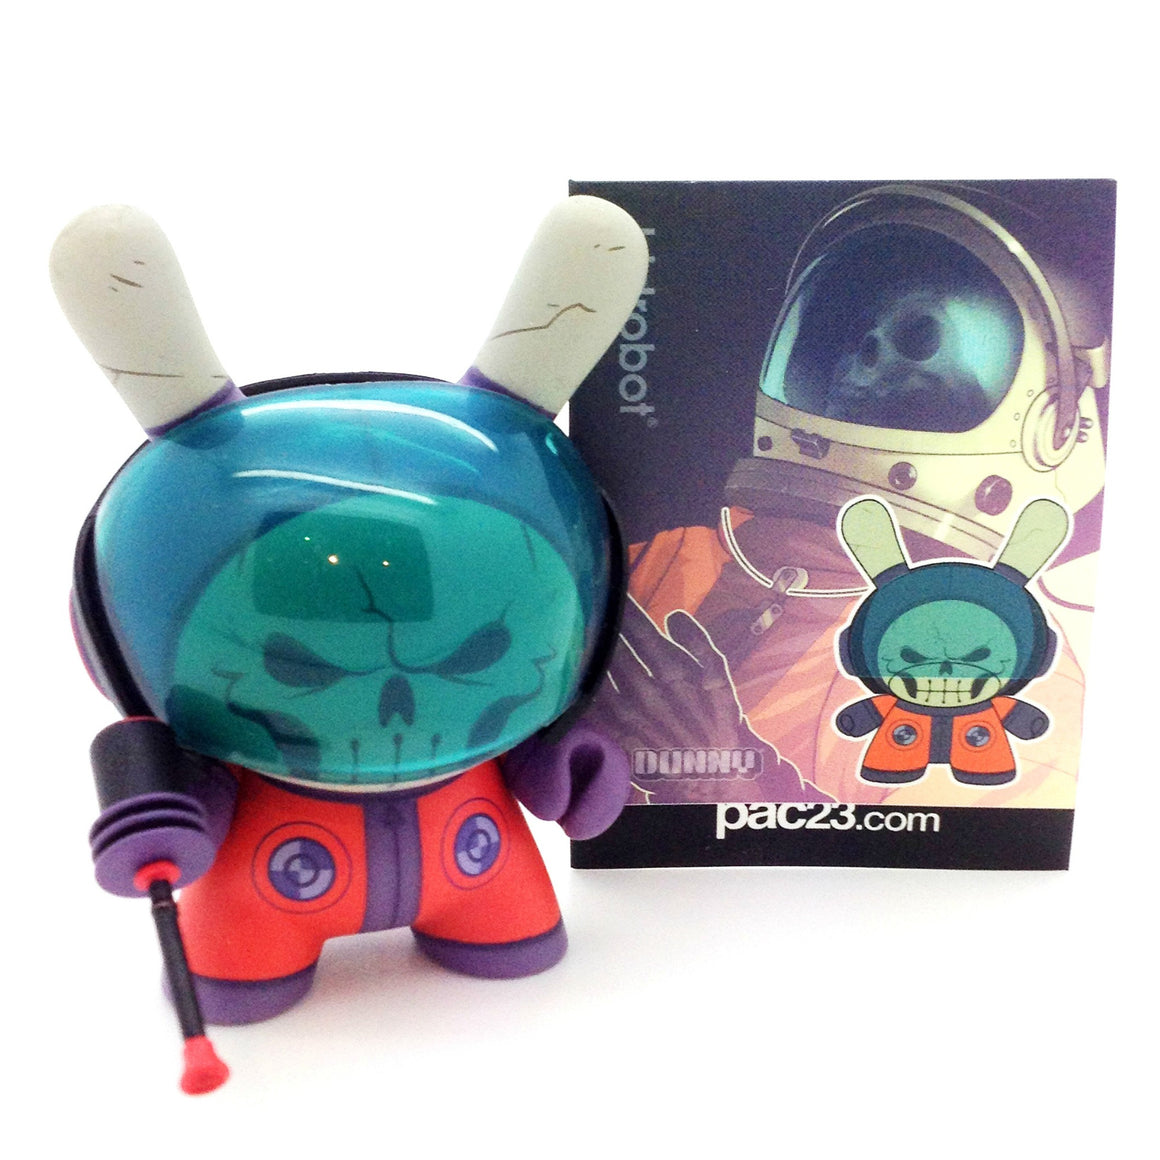 Dunny 2012 Series - Dead Astronaut Dunny - Mindzai  - 1